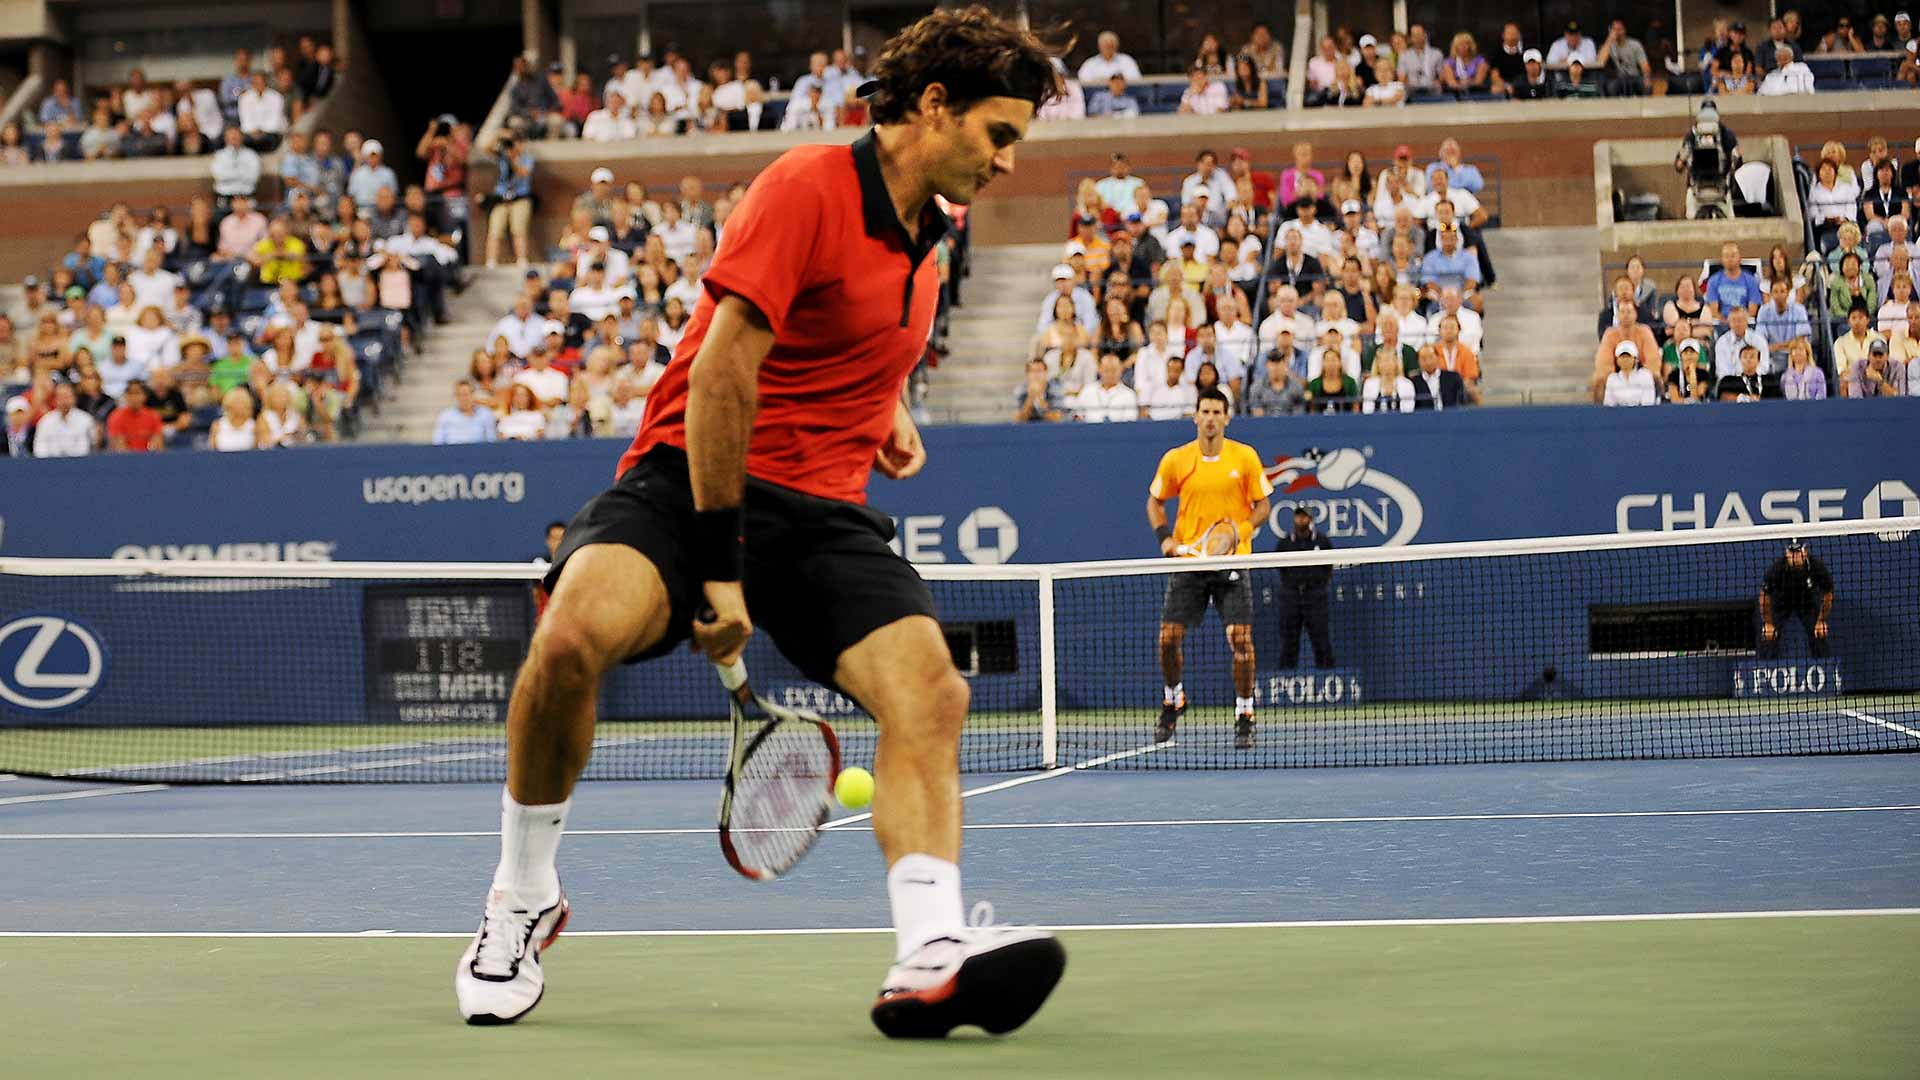 Why Djokovic in 2016 pales in comparison to peak Federer